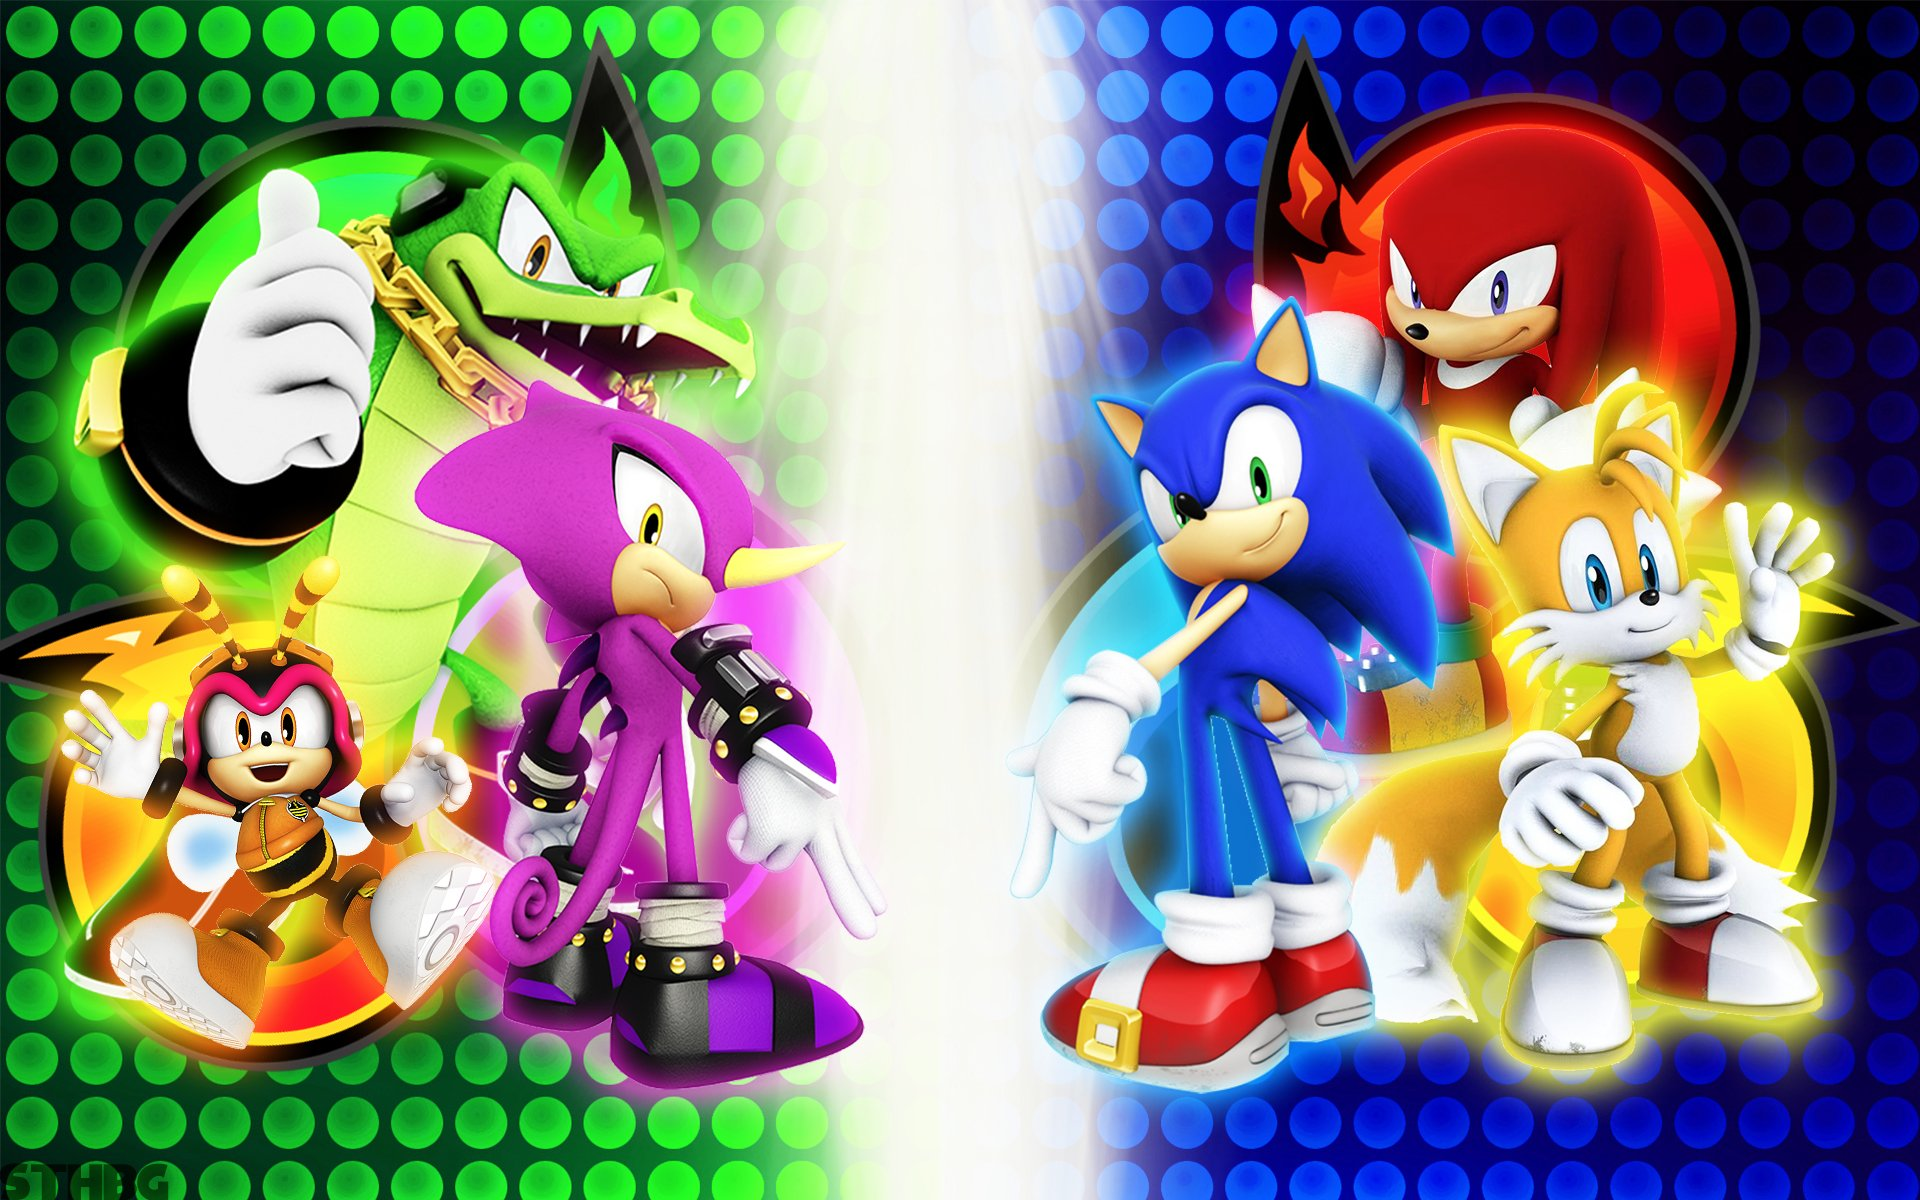 8 Bit Iphone X Wallpaper Sonic Heroes Full Hd Wallpaper And Background Image